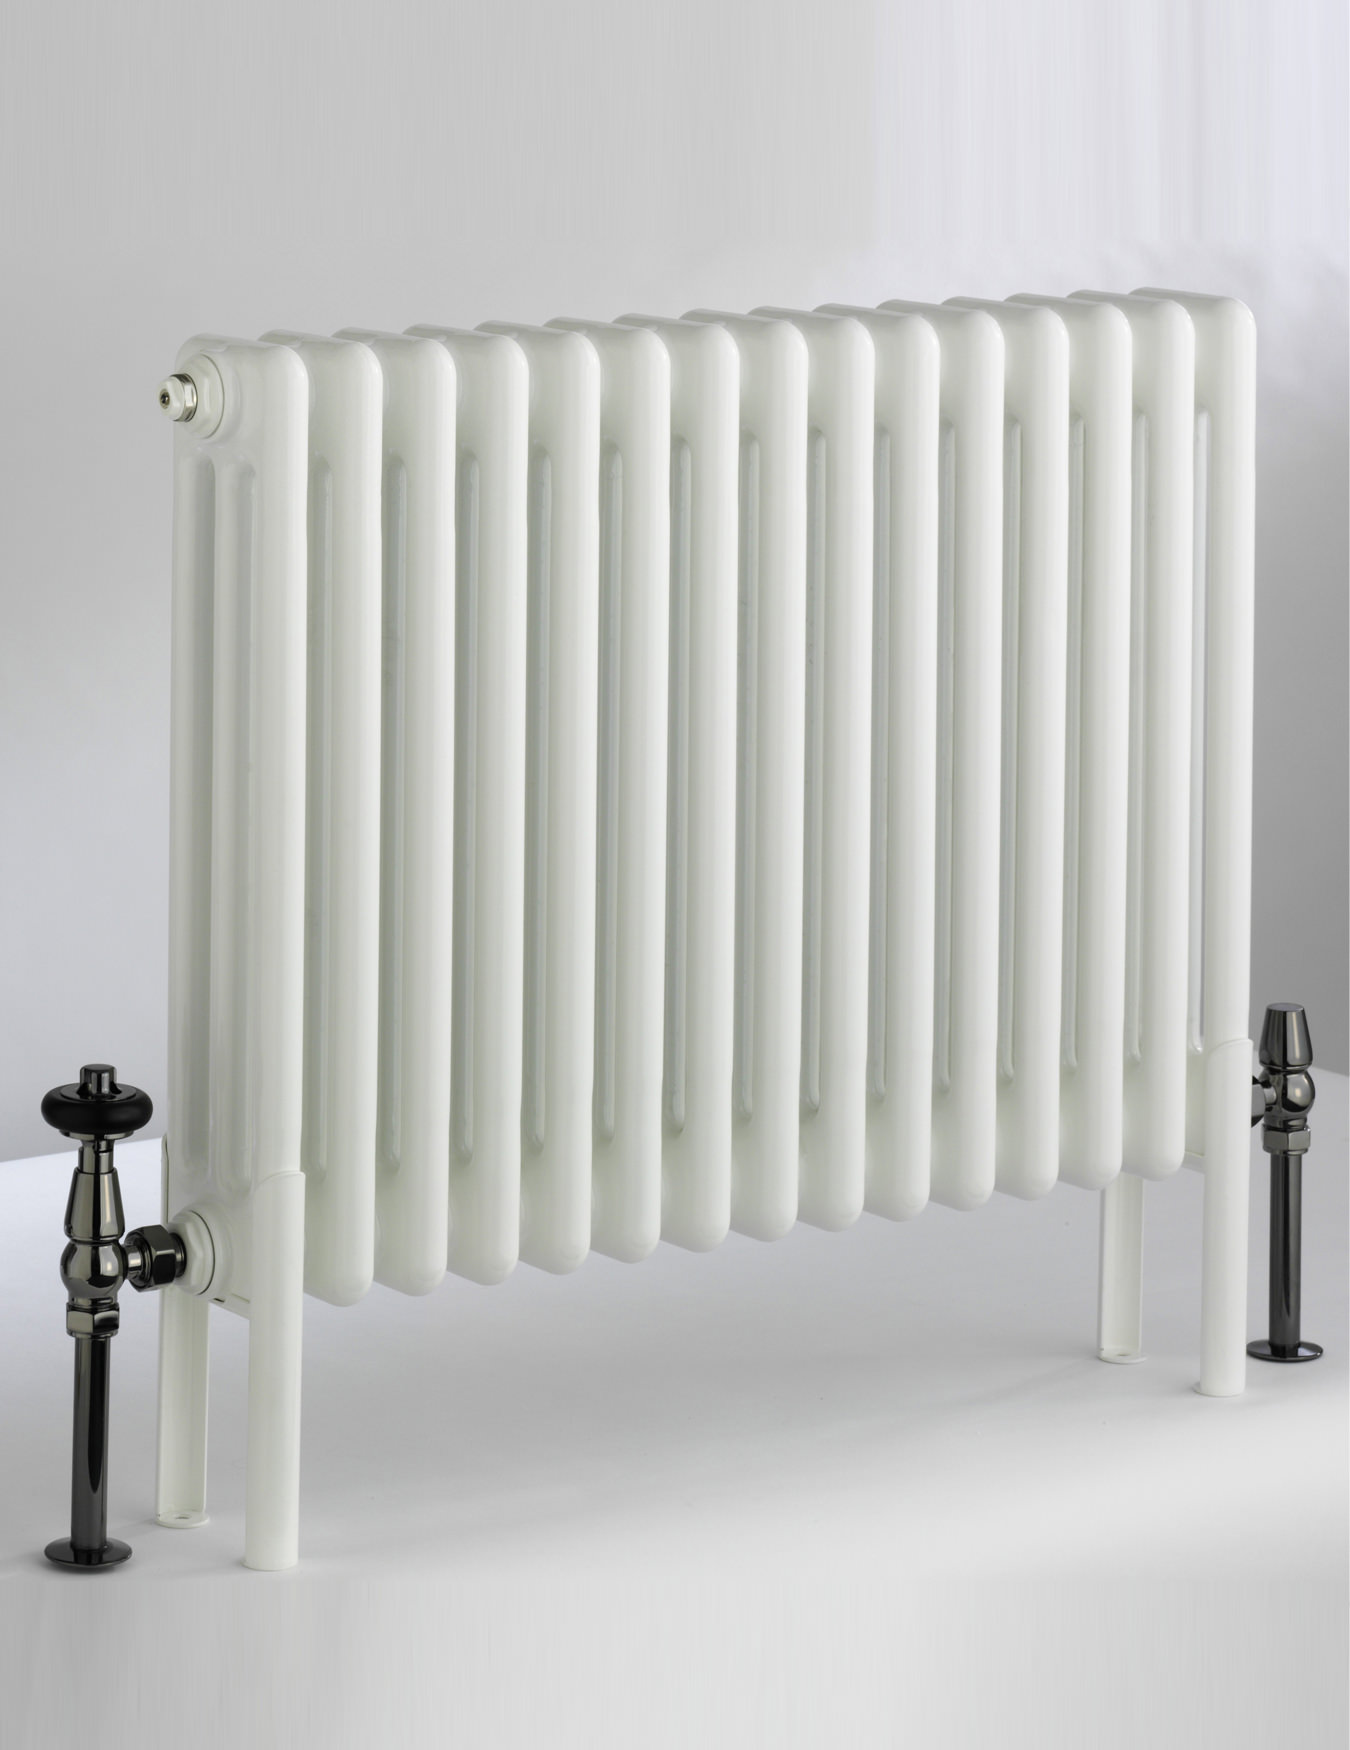 Design A Bathroom Online For Free Dq Heating Peta White 3 Column Radiator 592mm High 3 600 3